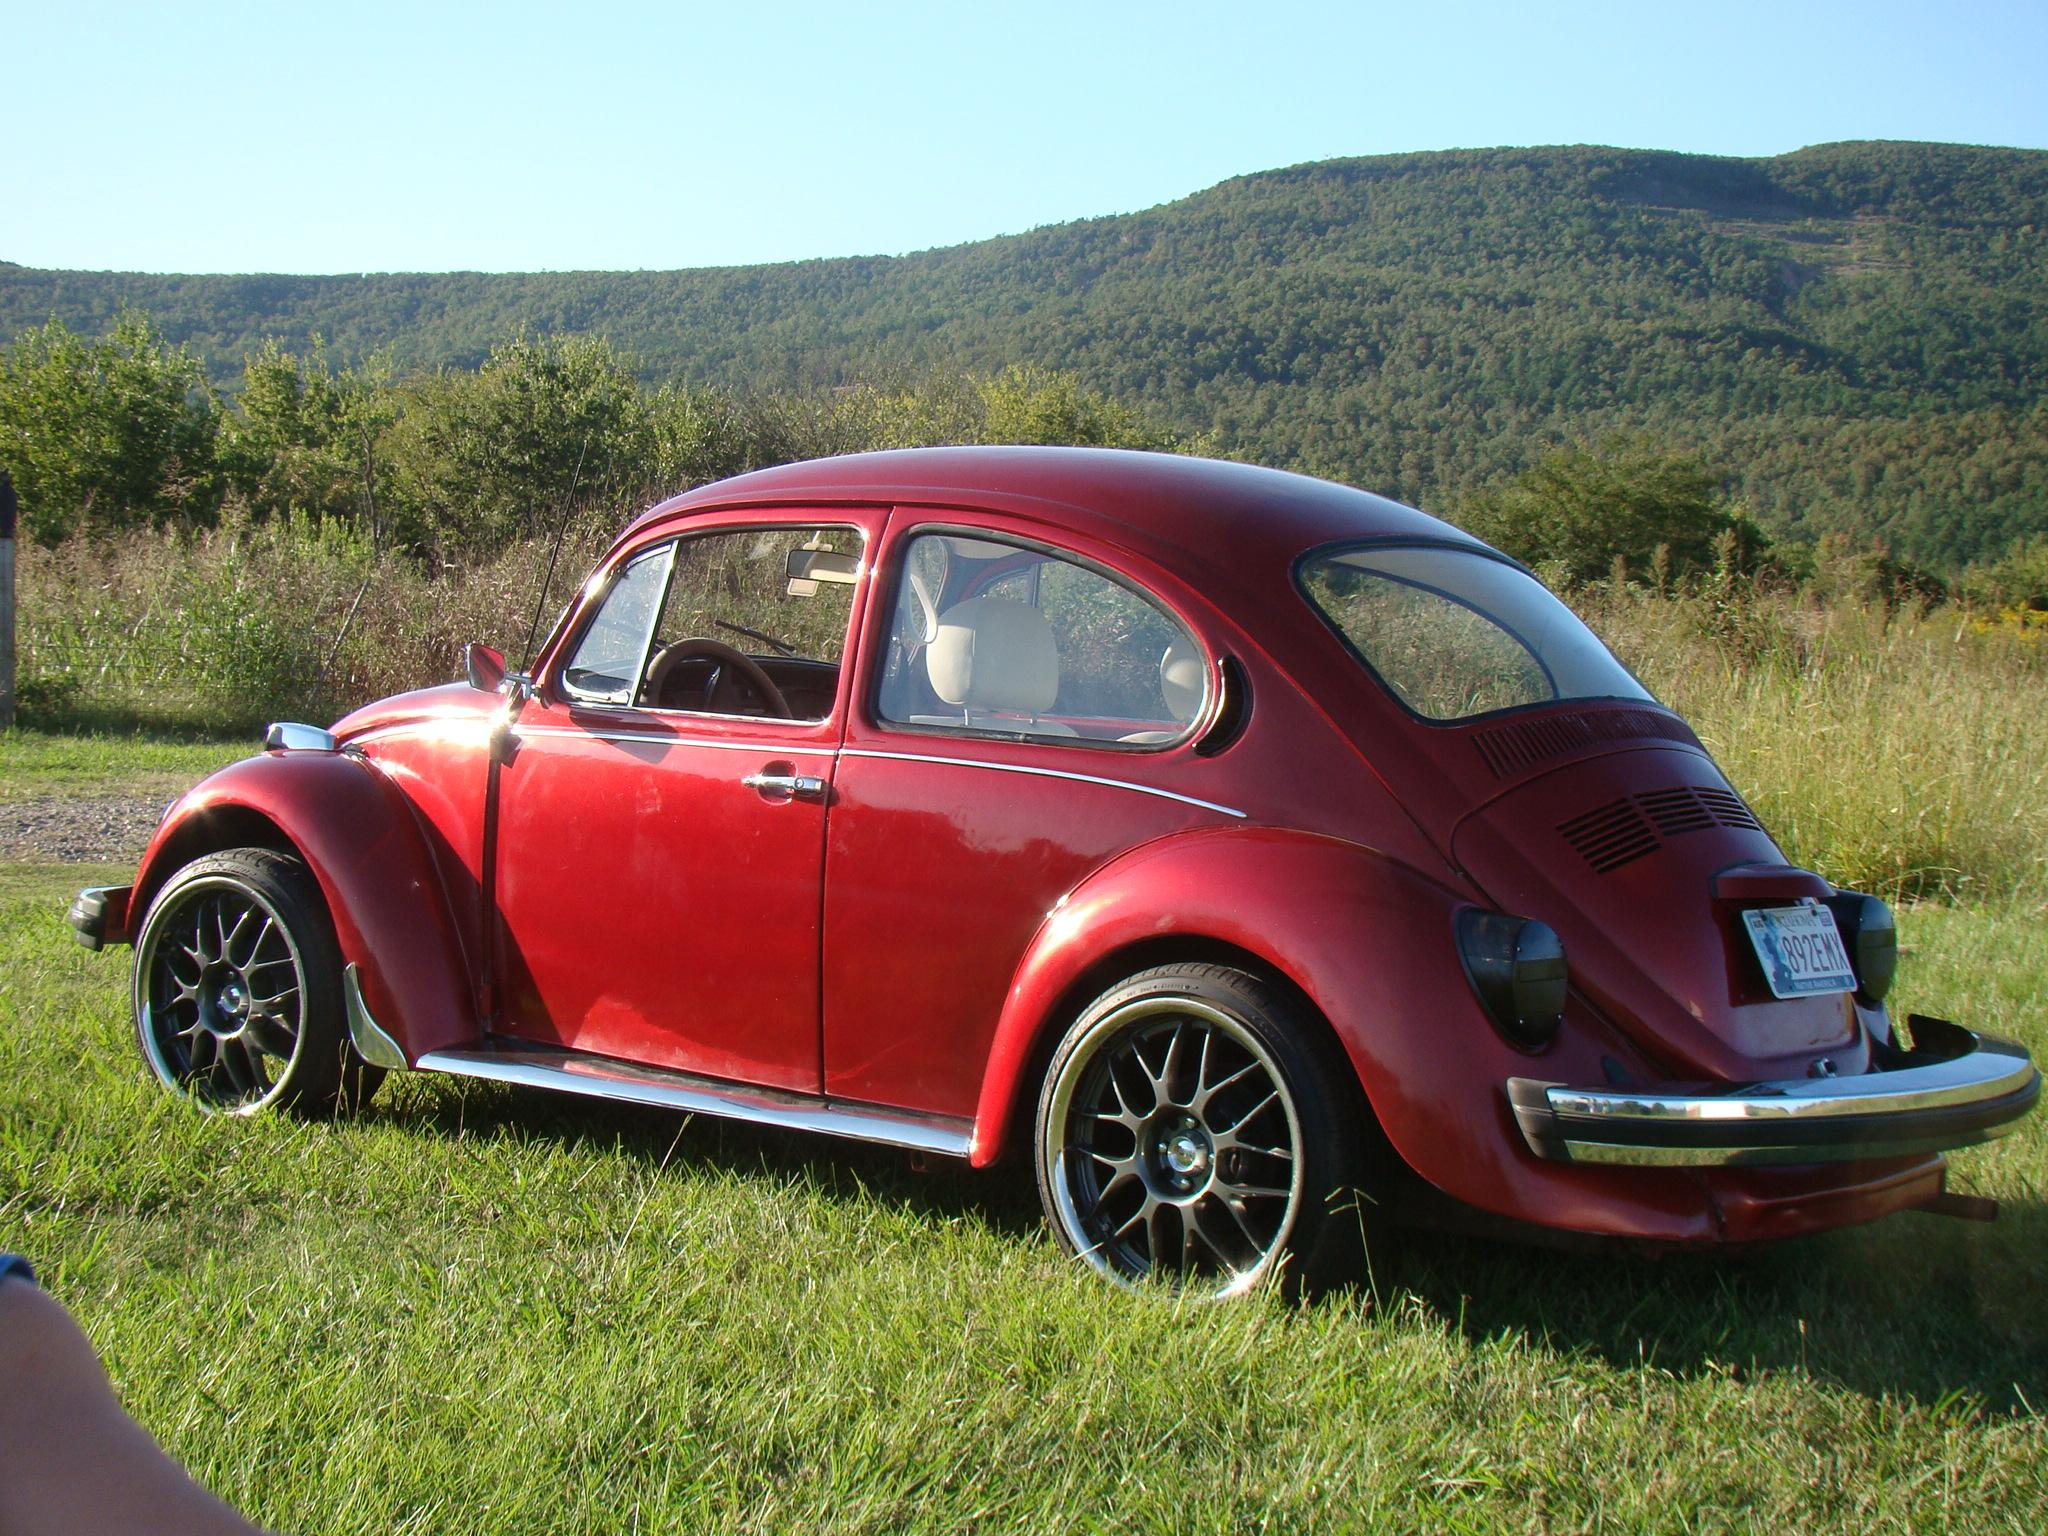 77candybug 1977 Volkswagen Beetle Specs, Photos, Modification Info at CarDomain